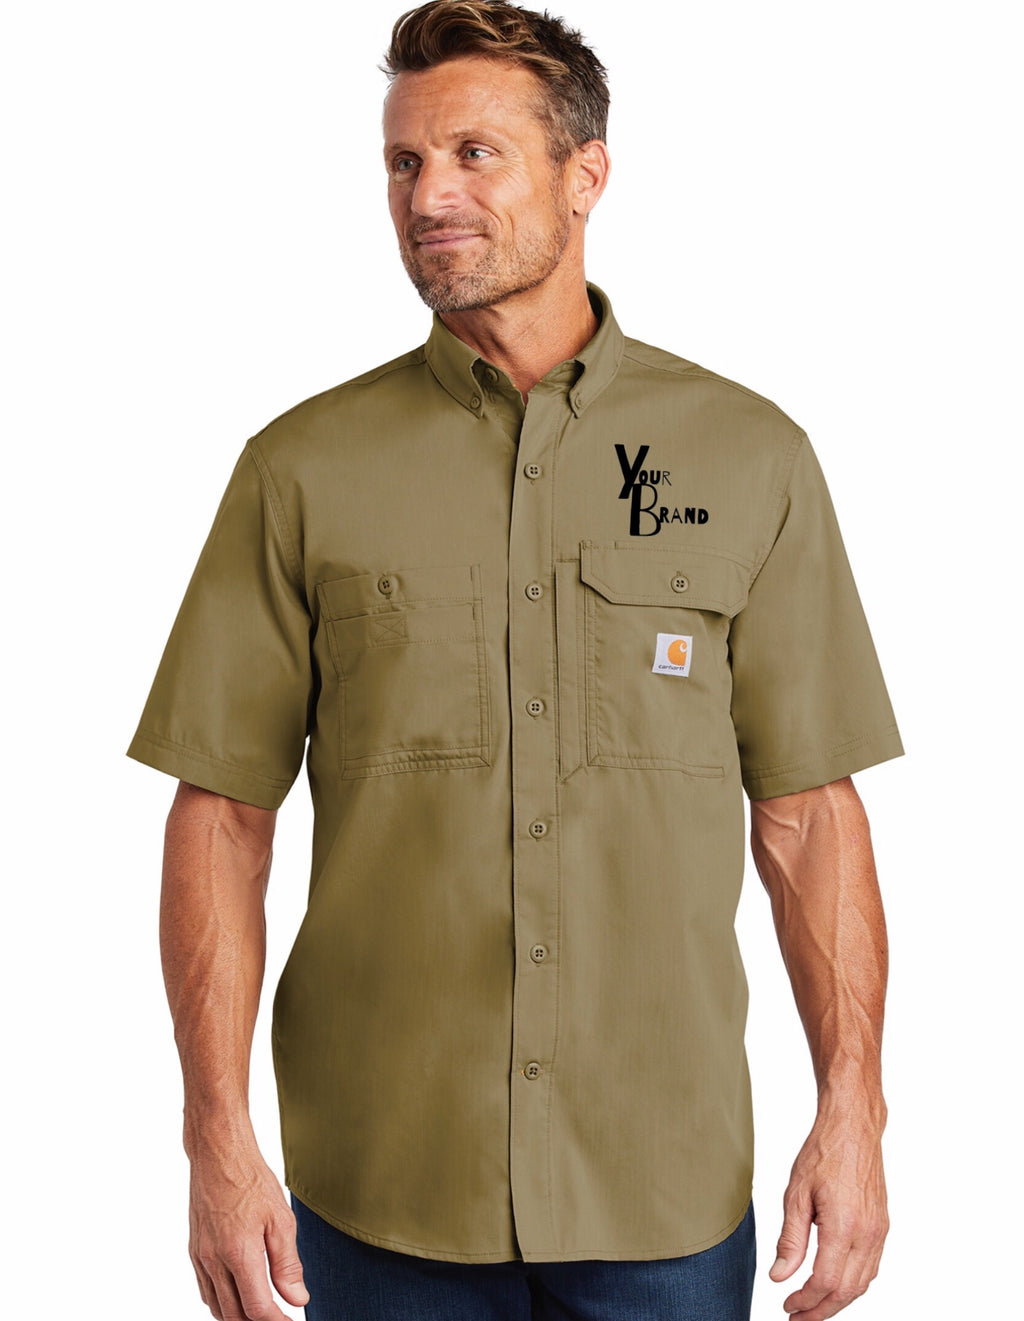 Carhartt JUST the BRAND Force Ridgeline Short Sleeve Shirt